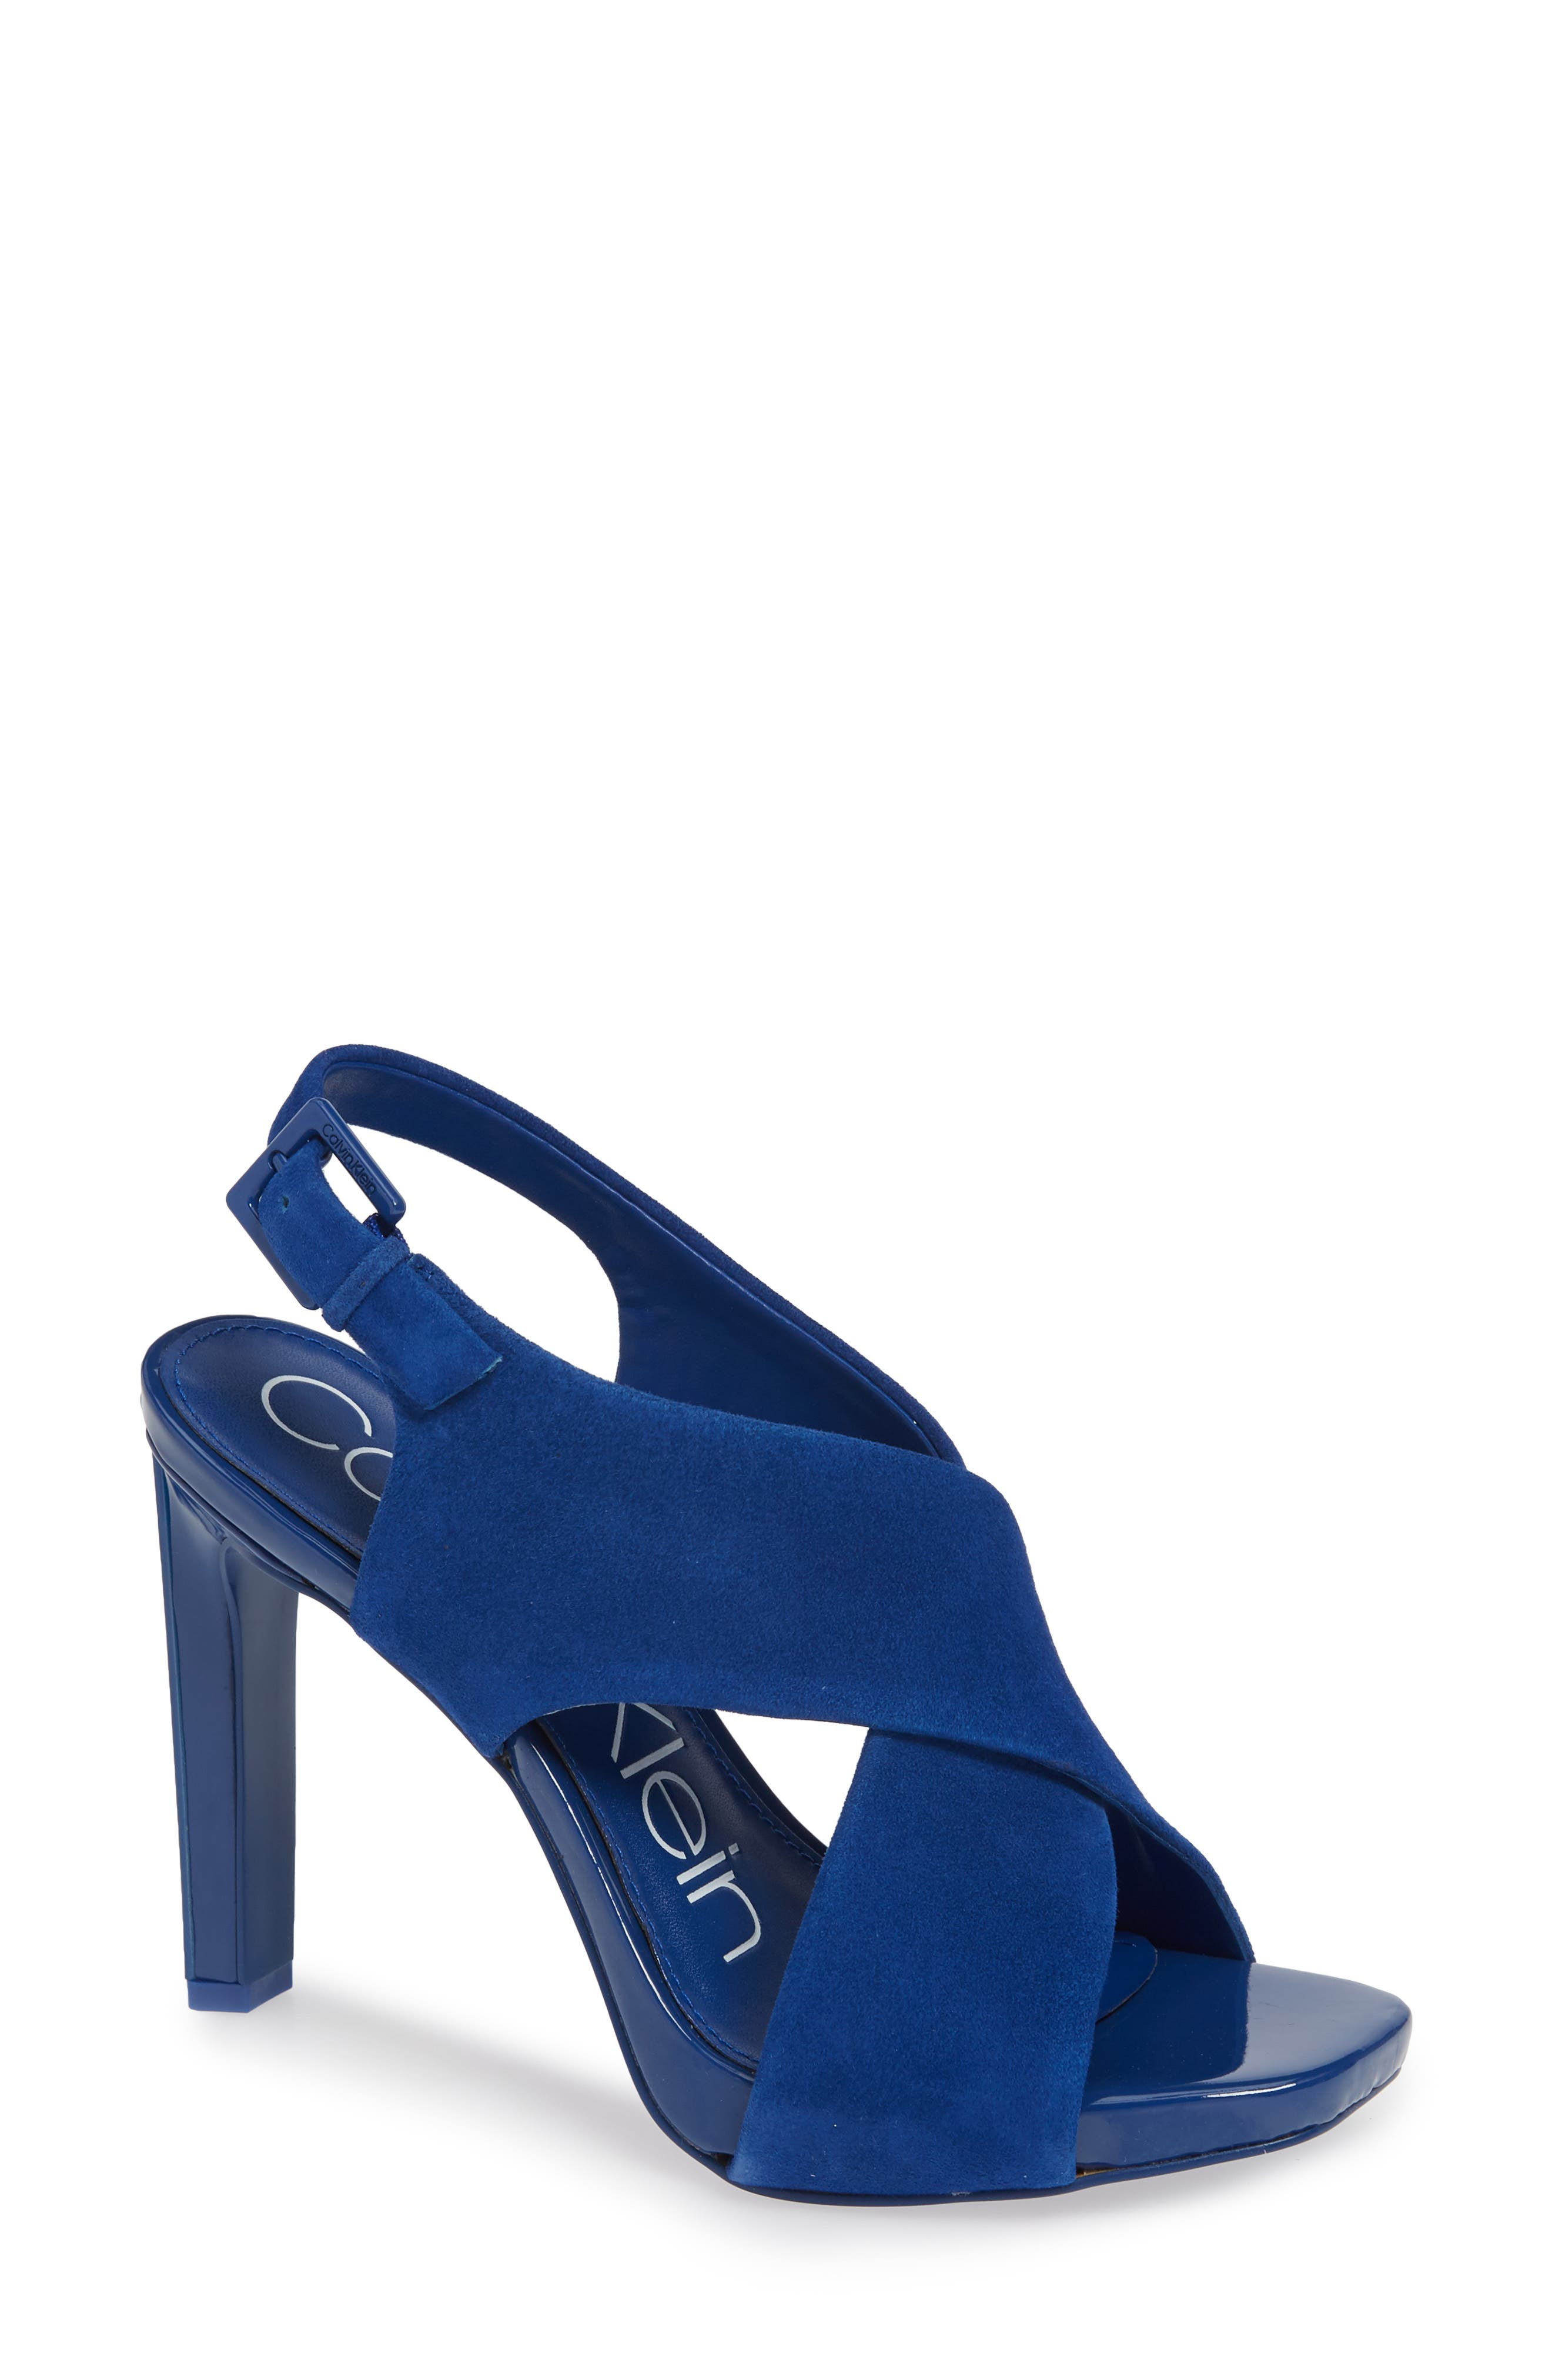 CALVIN KLEIN, Myra Cross Strap Sandal, Main thumbnail 1, color, ROYAL BLUE SUEDE